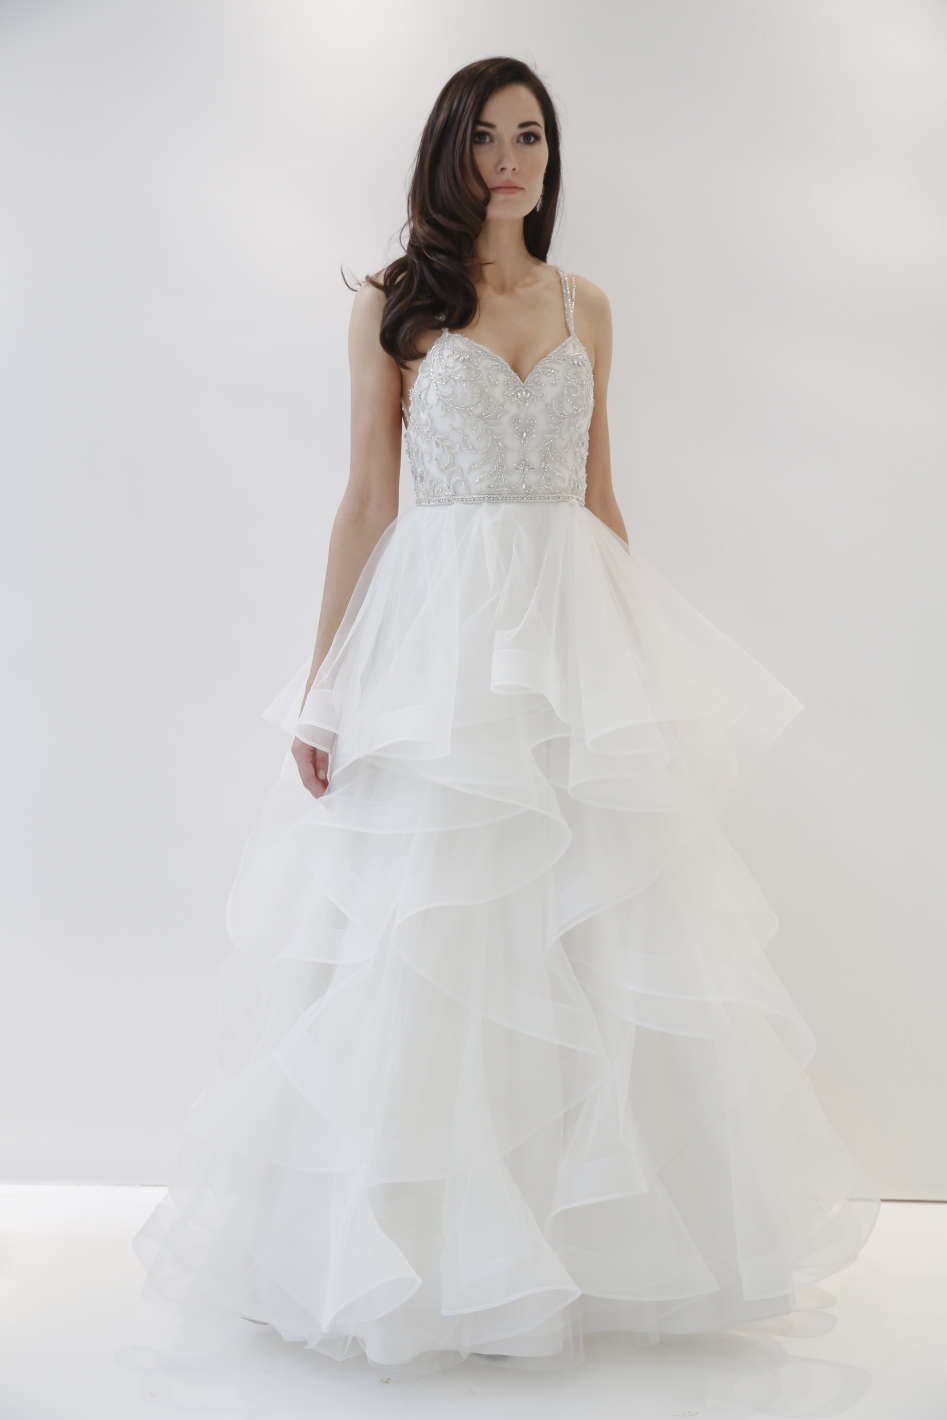 10 Amazing Wedding Dresses in Las Vegas | Get Married in Vegas